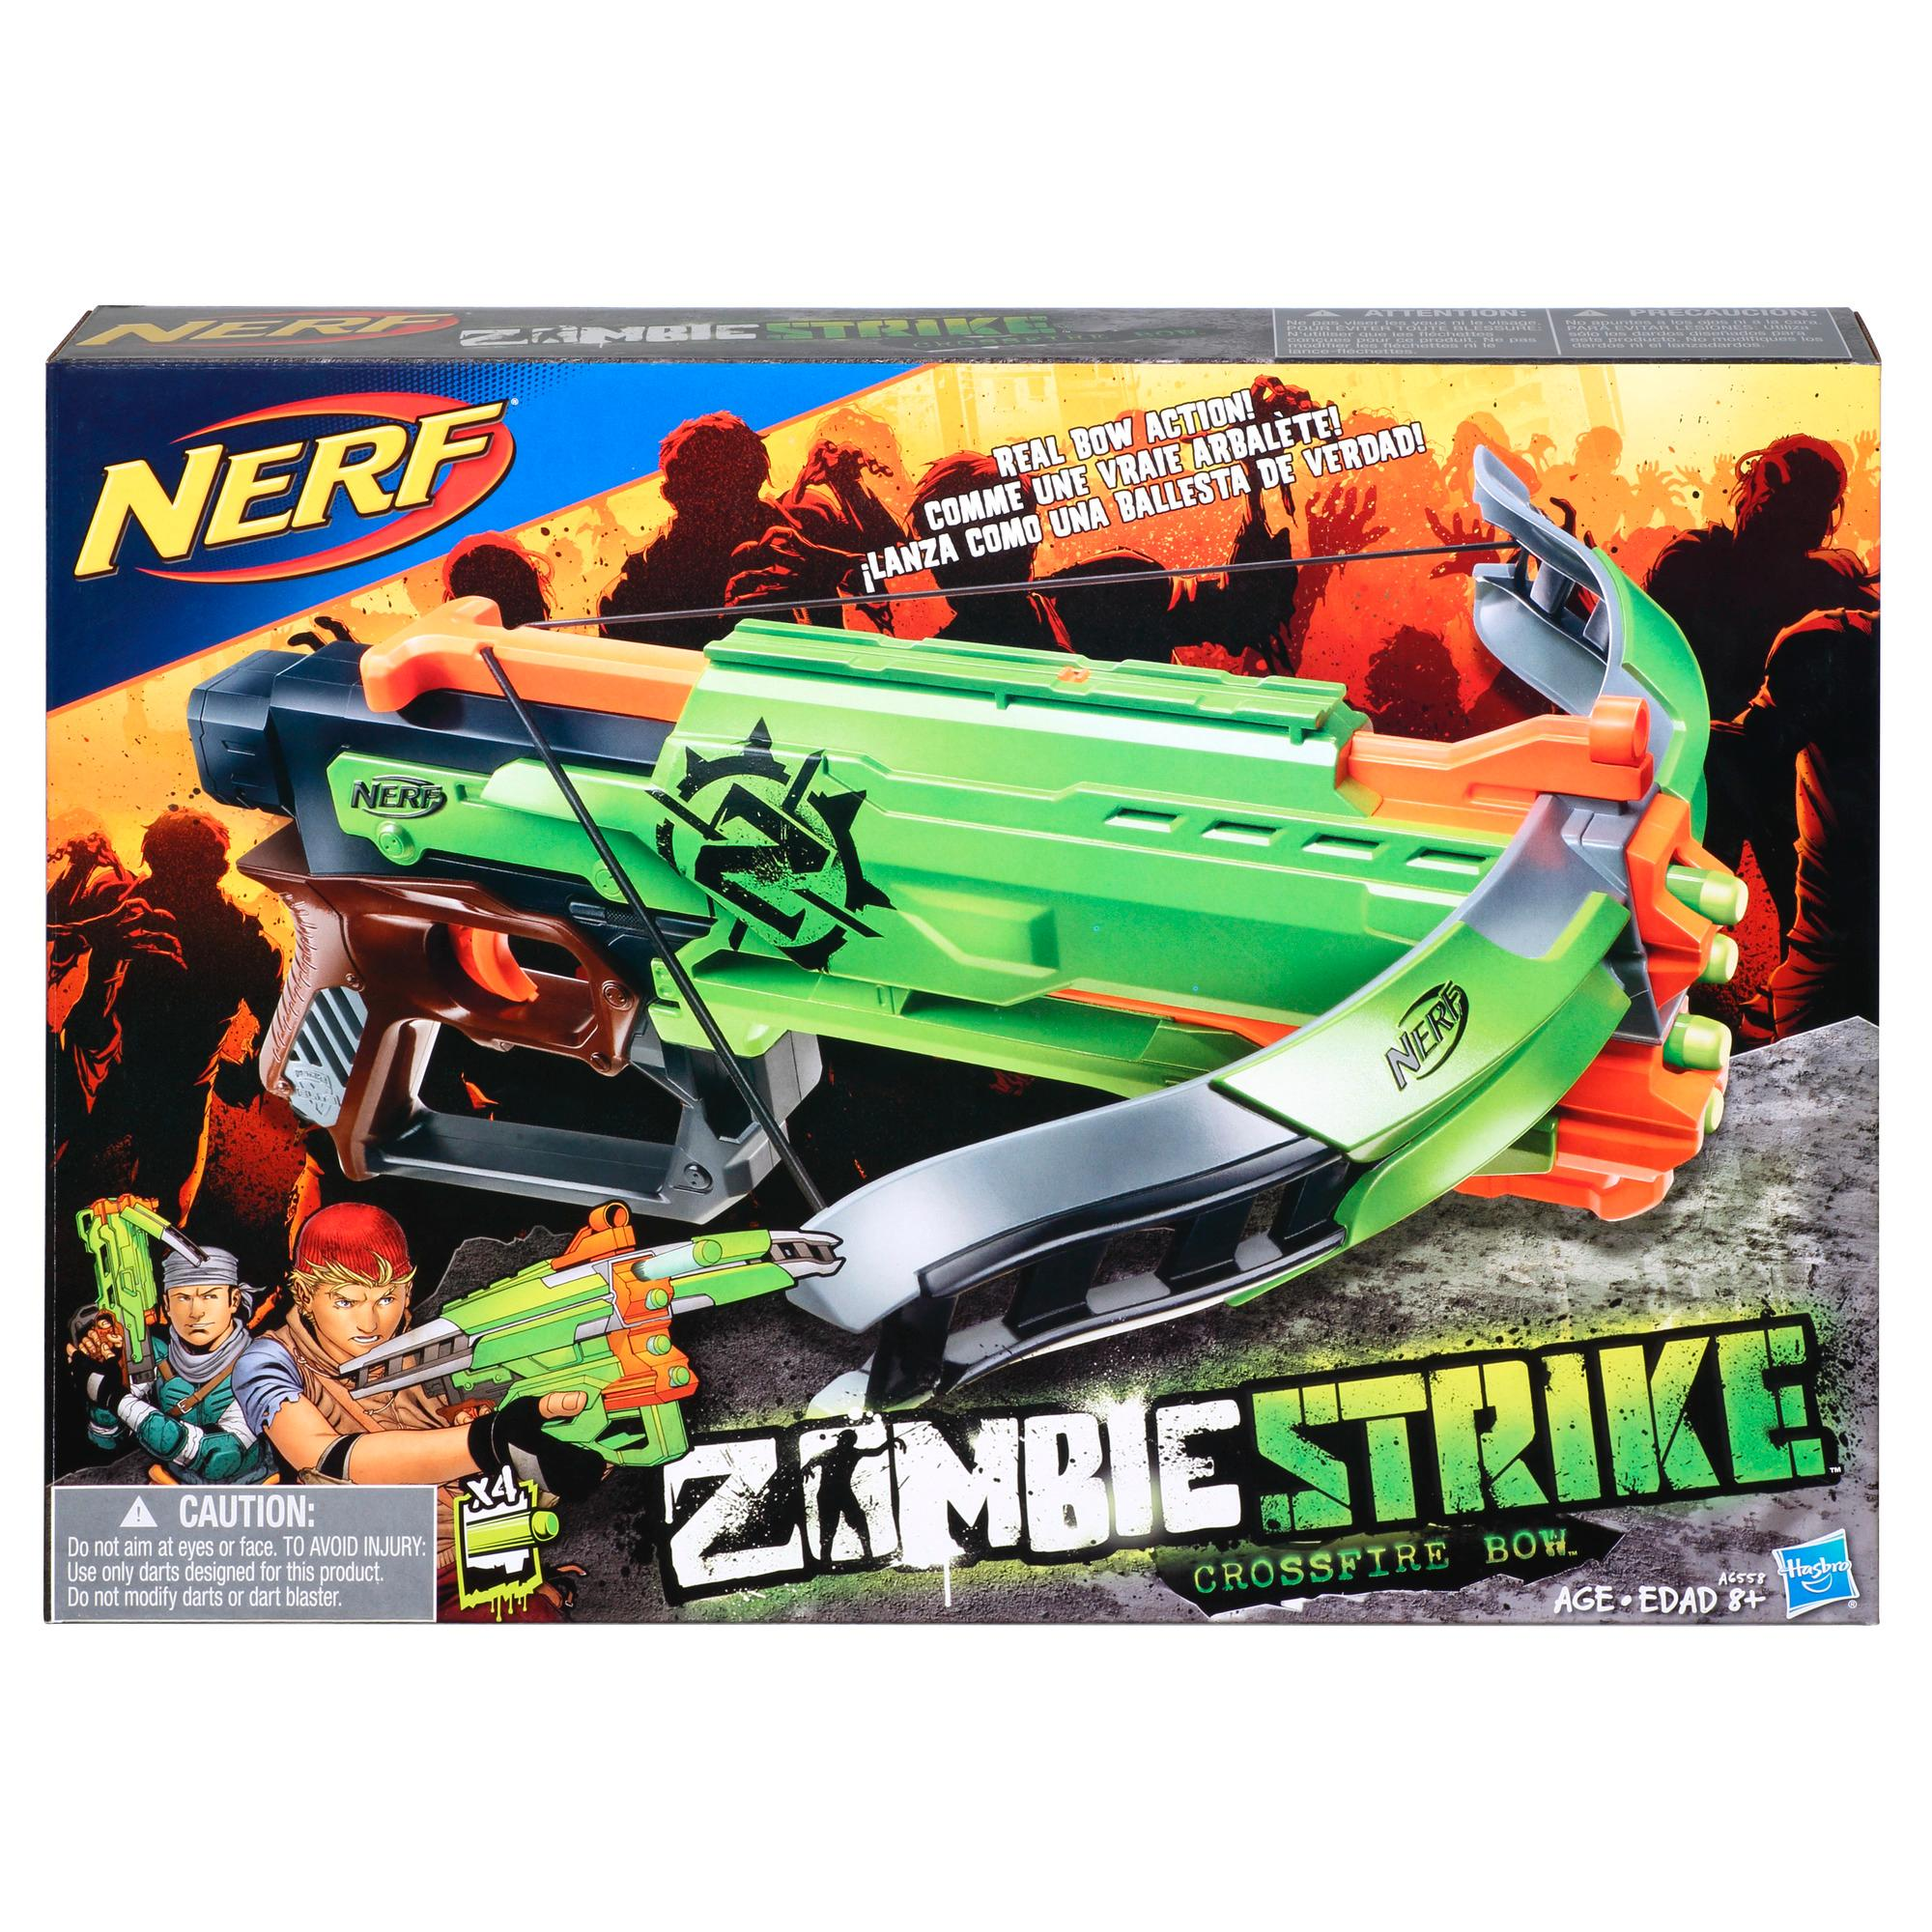 Nerf Zombie Strike Crossfire Bow Toy Previous Next